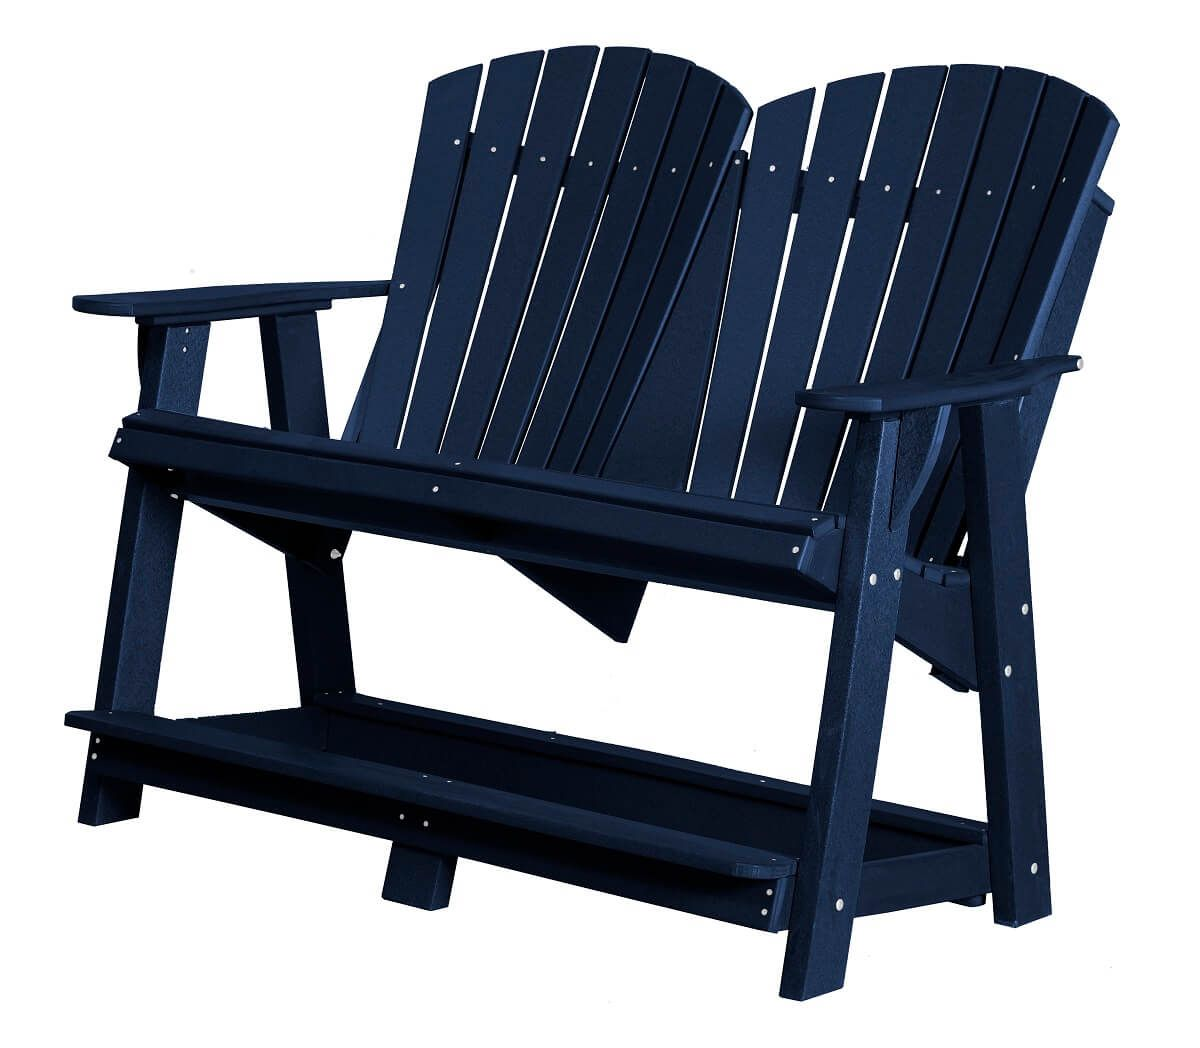 Patriot Blue Sidra Double High Adirondack